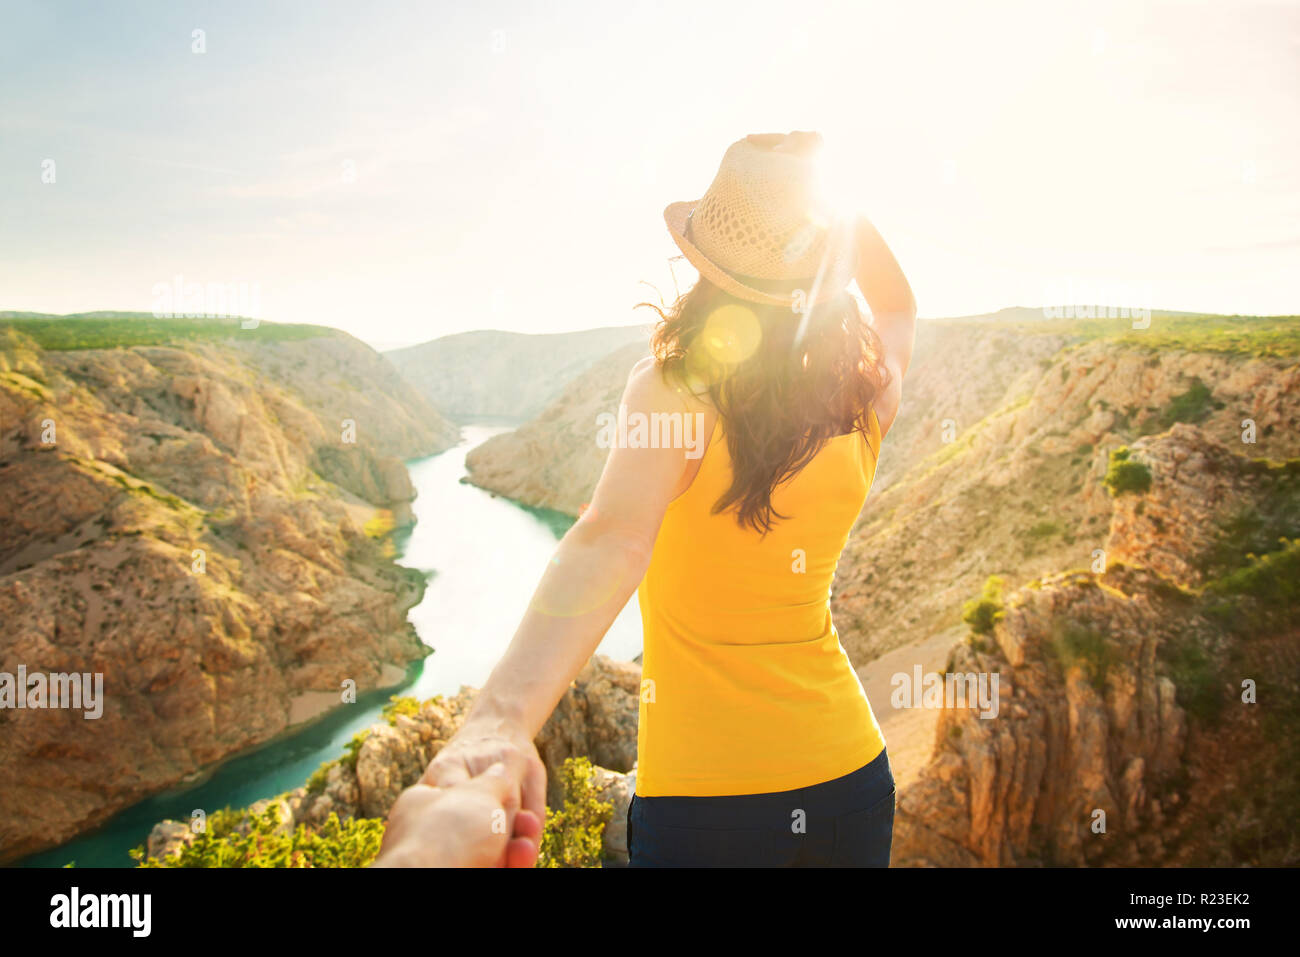 young woman in yellow top and hat standing with her back to camera at edge of cliff looking at sunset over Zrmanja river canyon, Zadar, Croatia Stock Photo